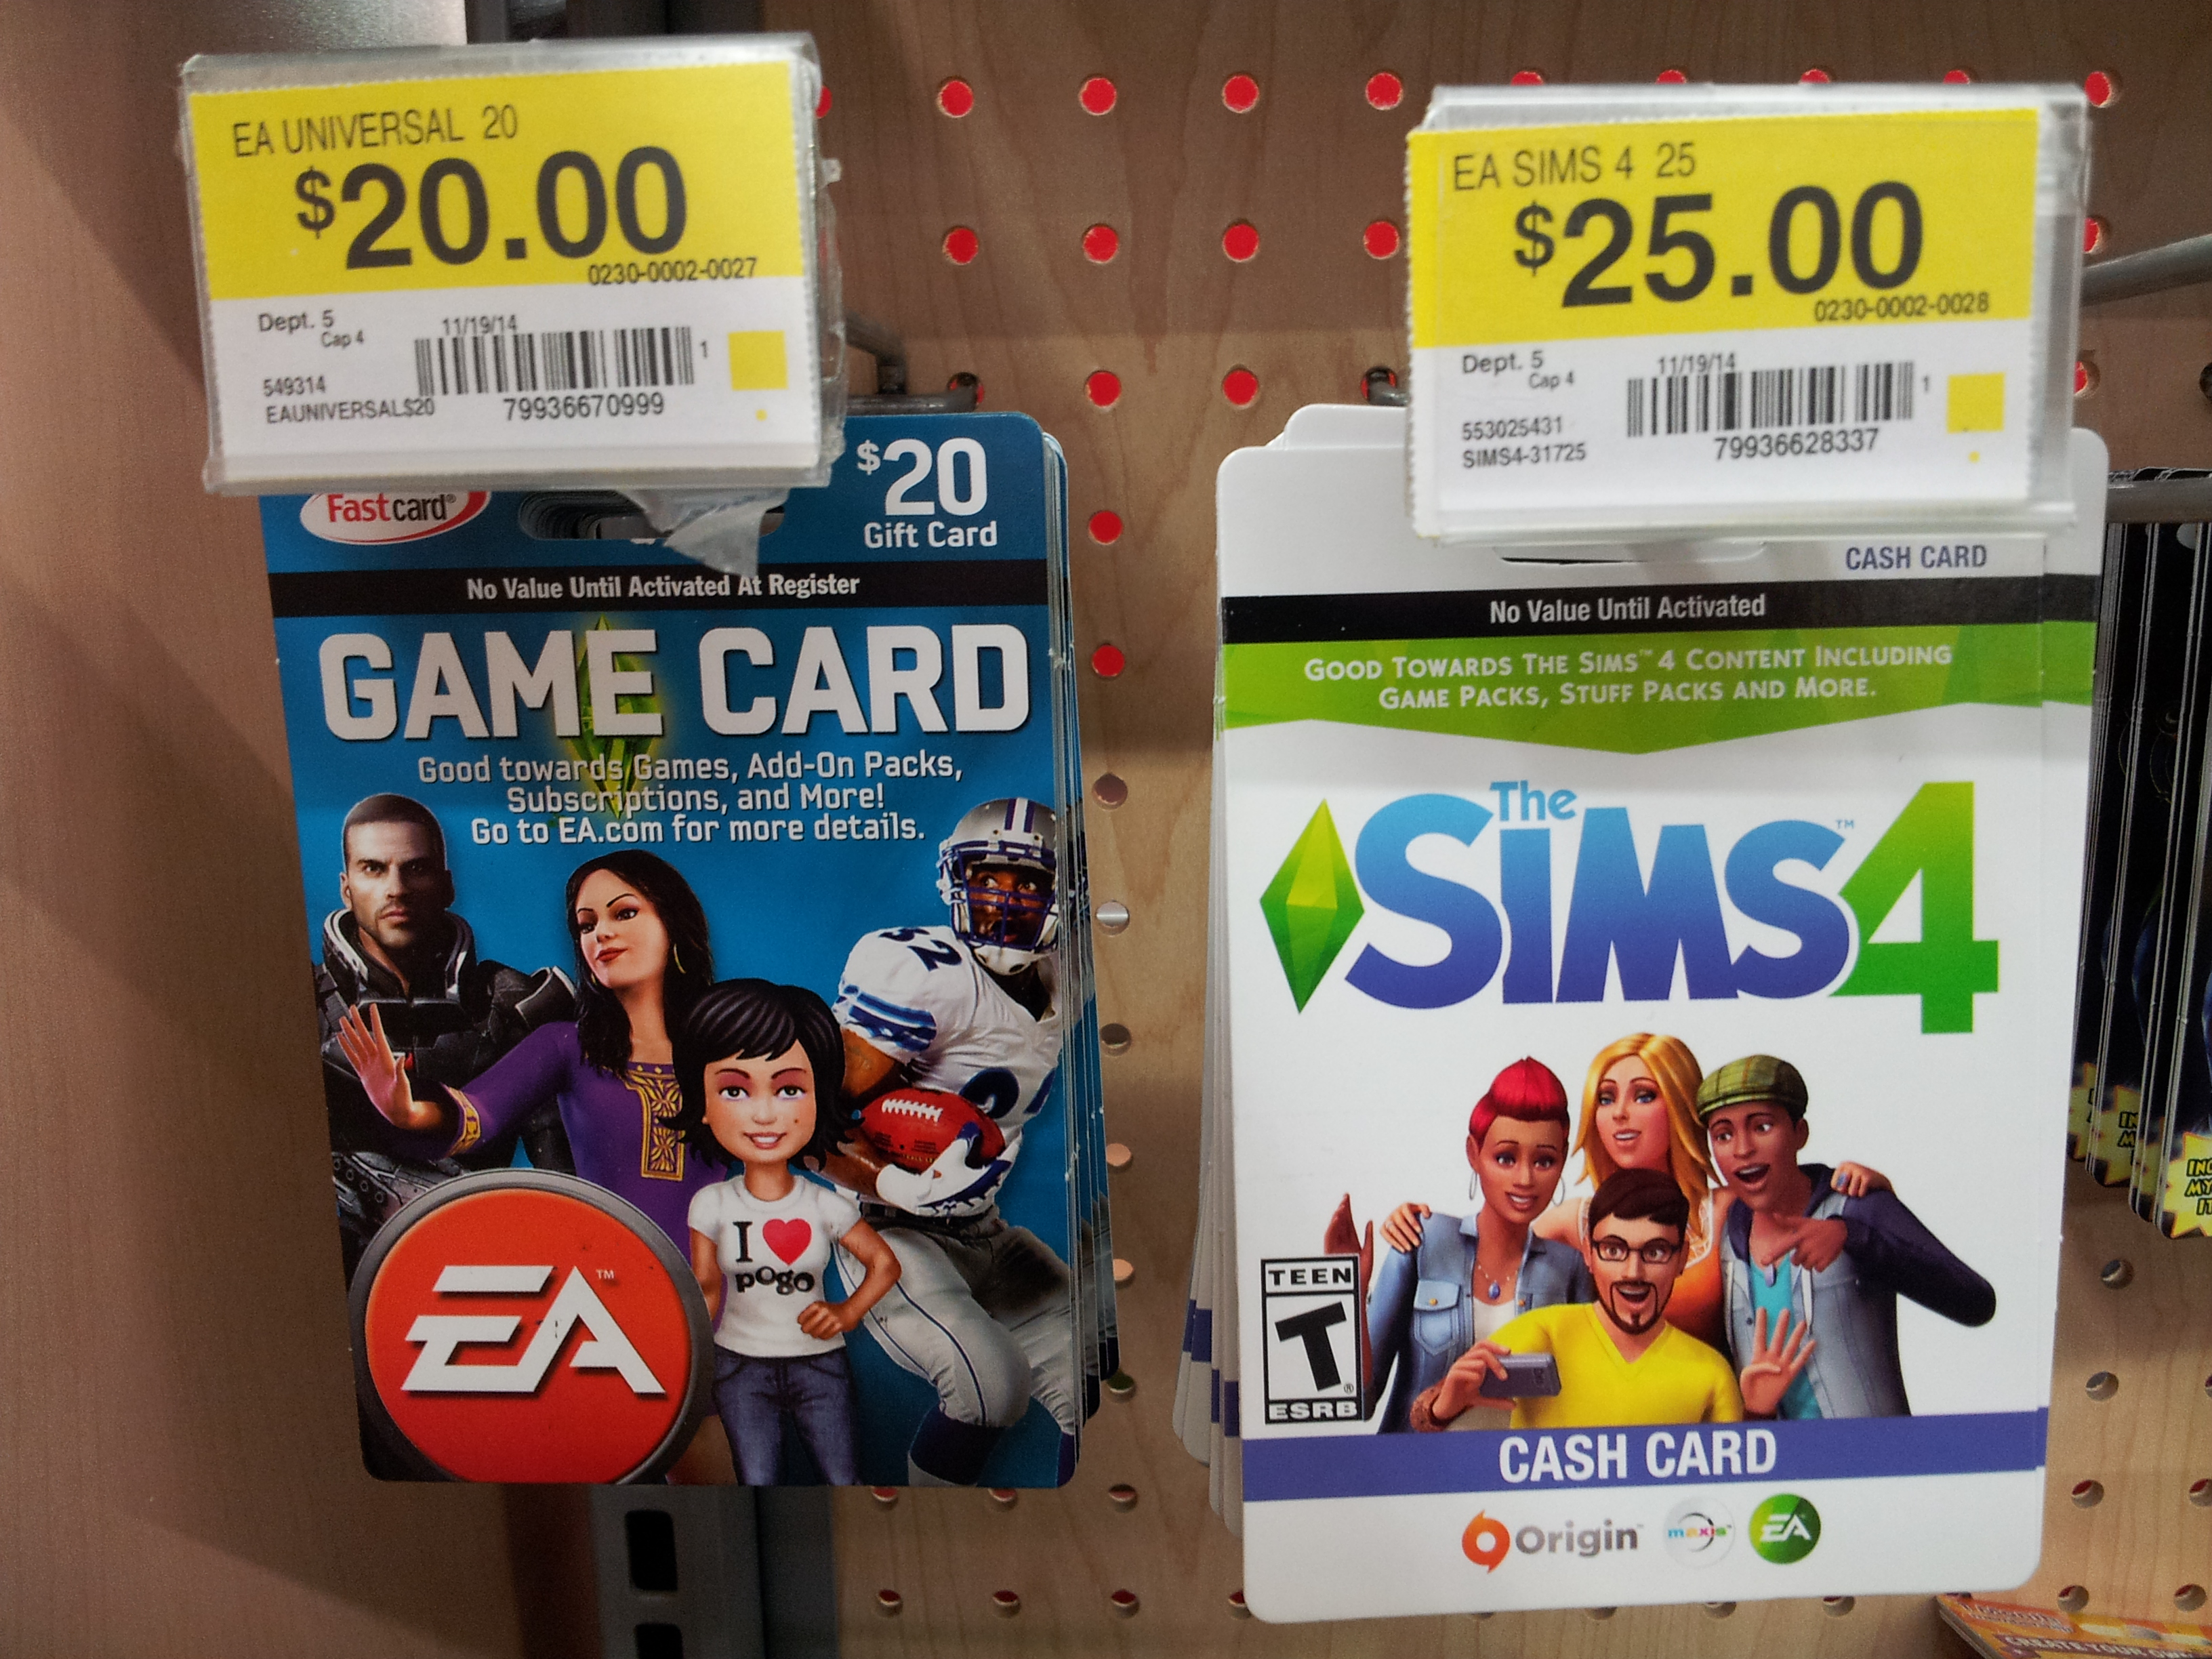 The Sims 4 Cash Card Now Available at Walmart | SimsVIP